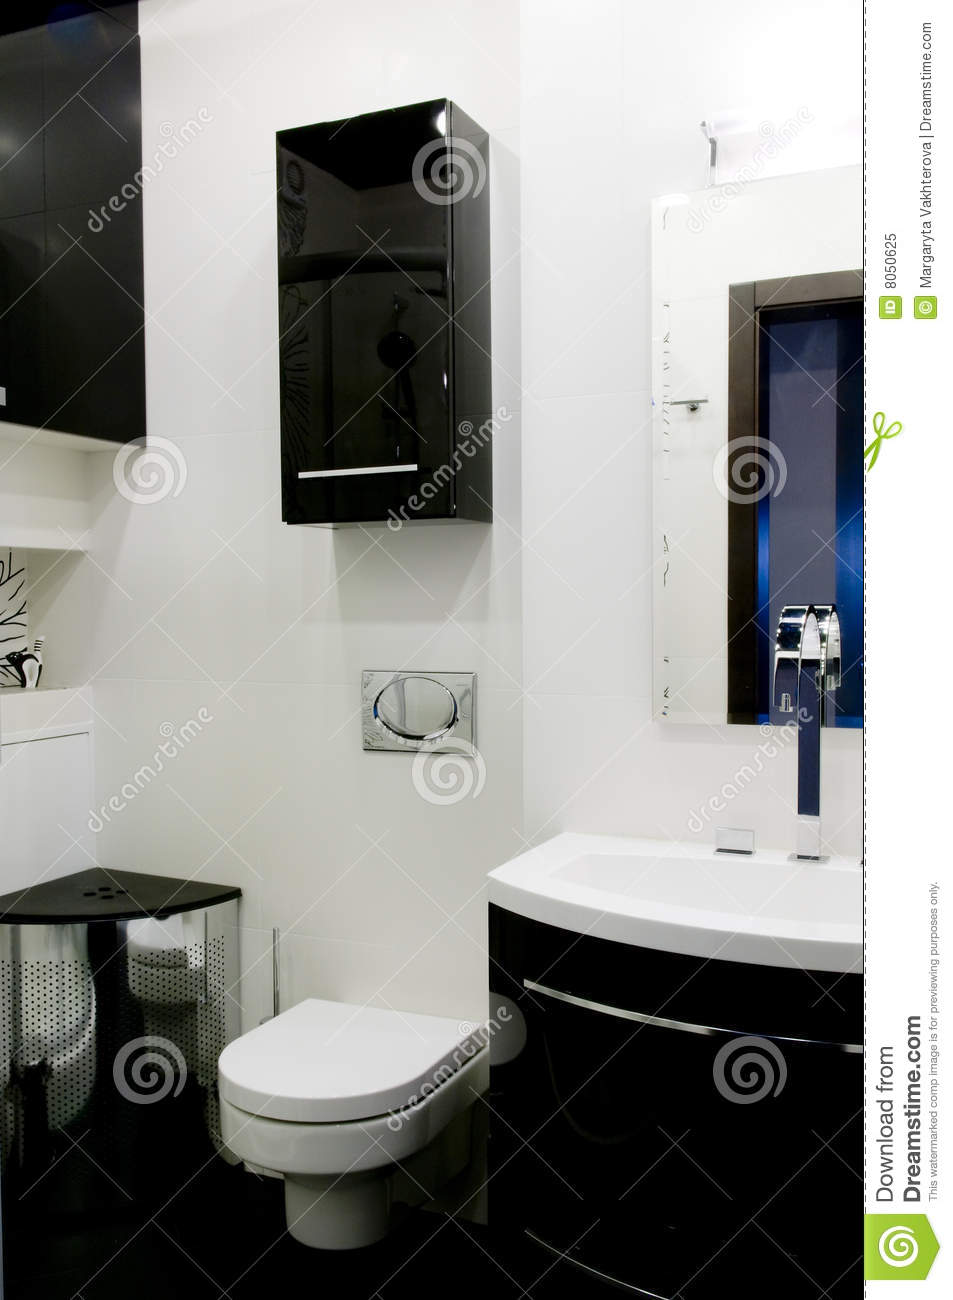 toilette moderne photo libre de droits image 8050625. Black Bedroom Furniture Sets. Home Design Ideas